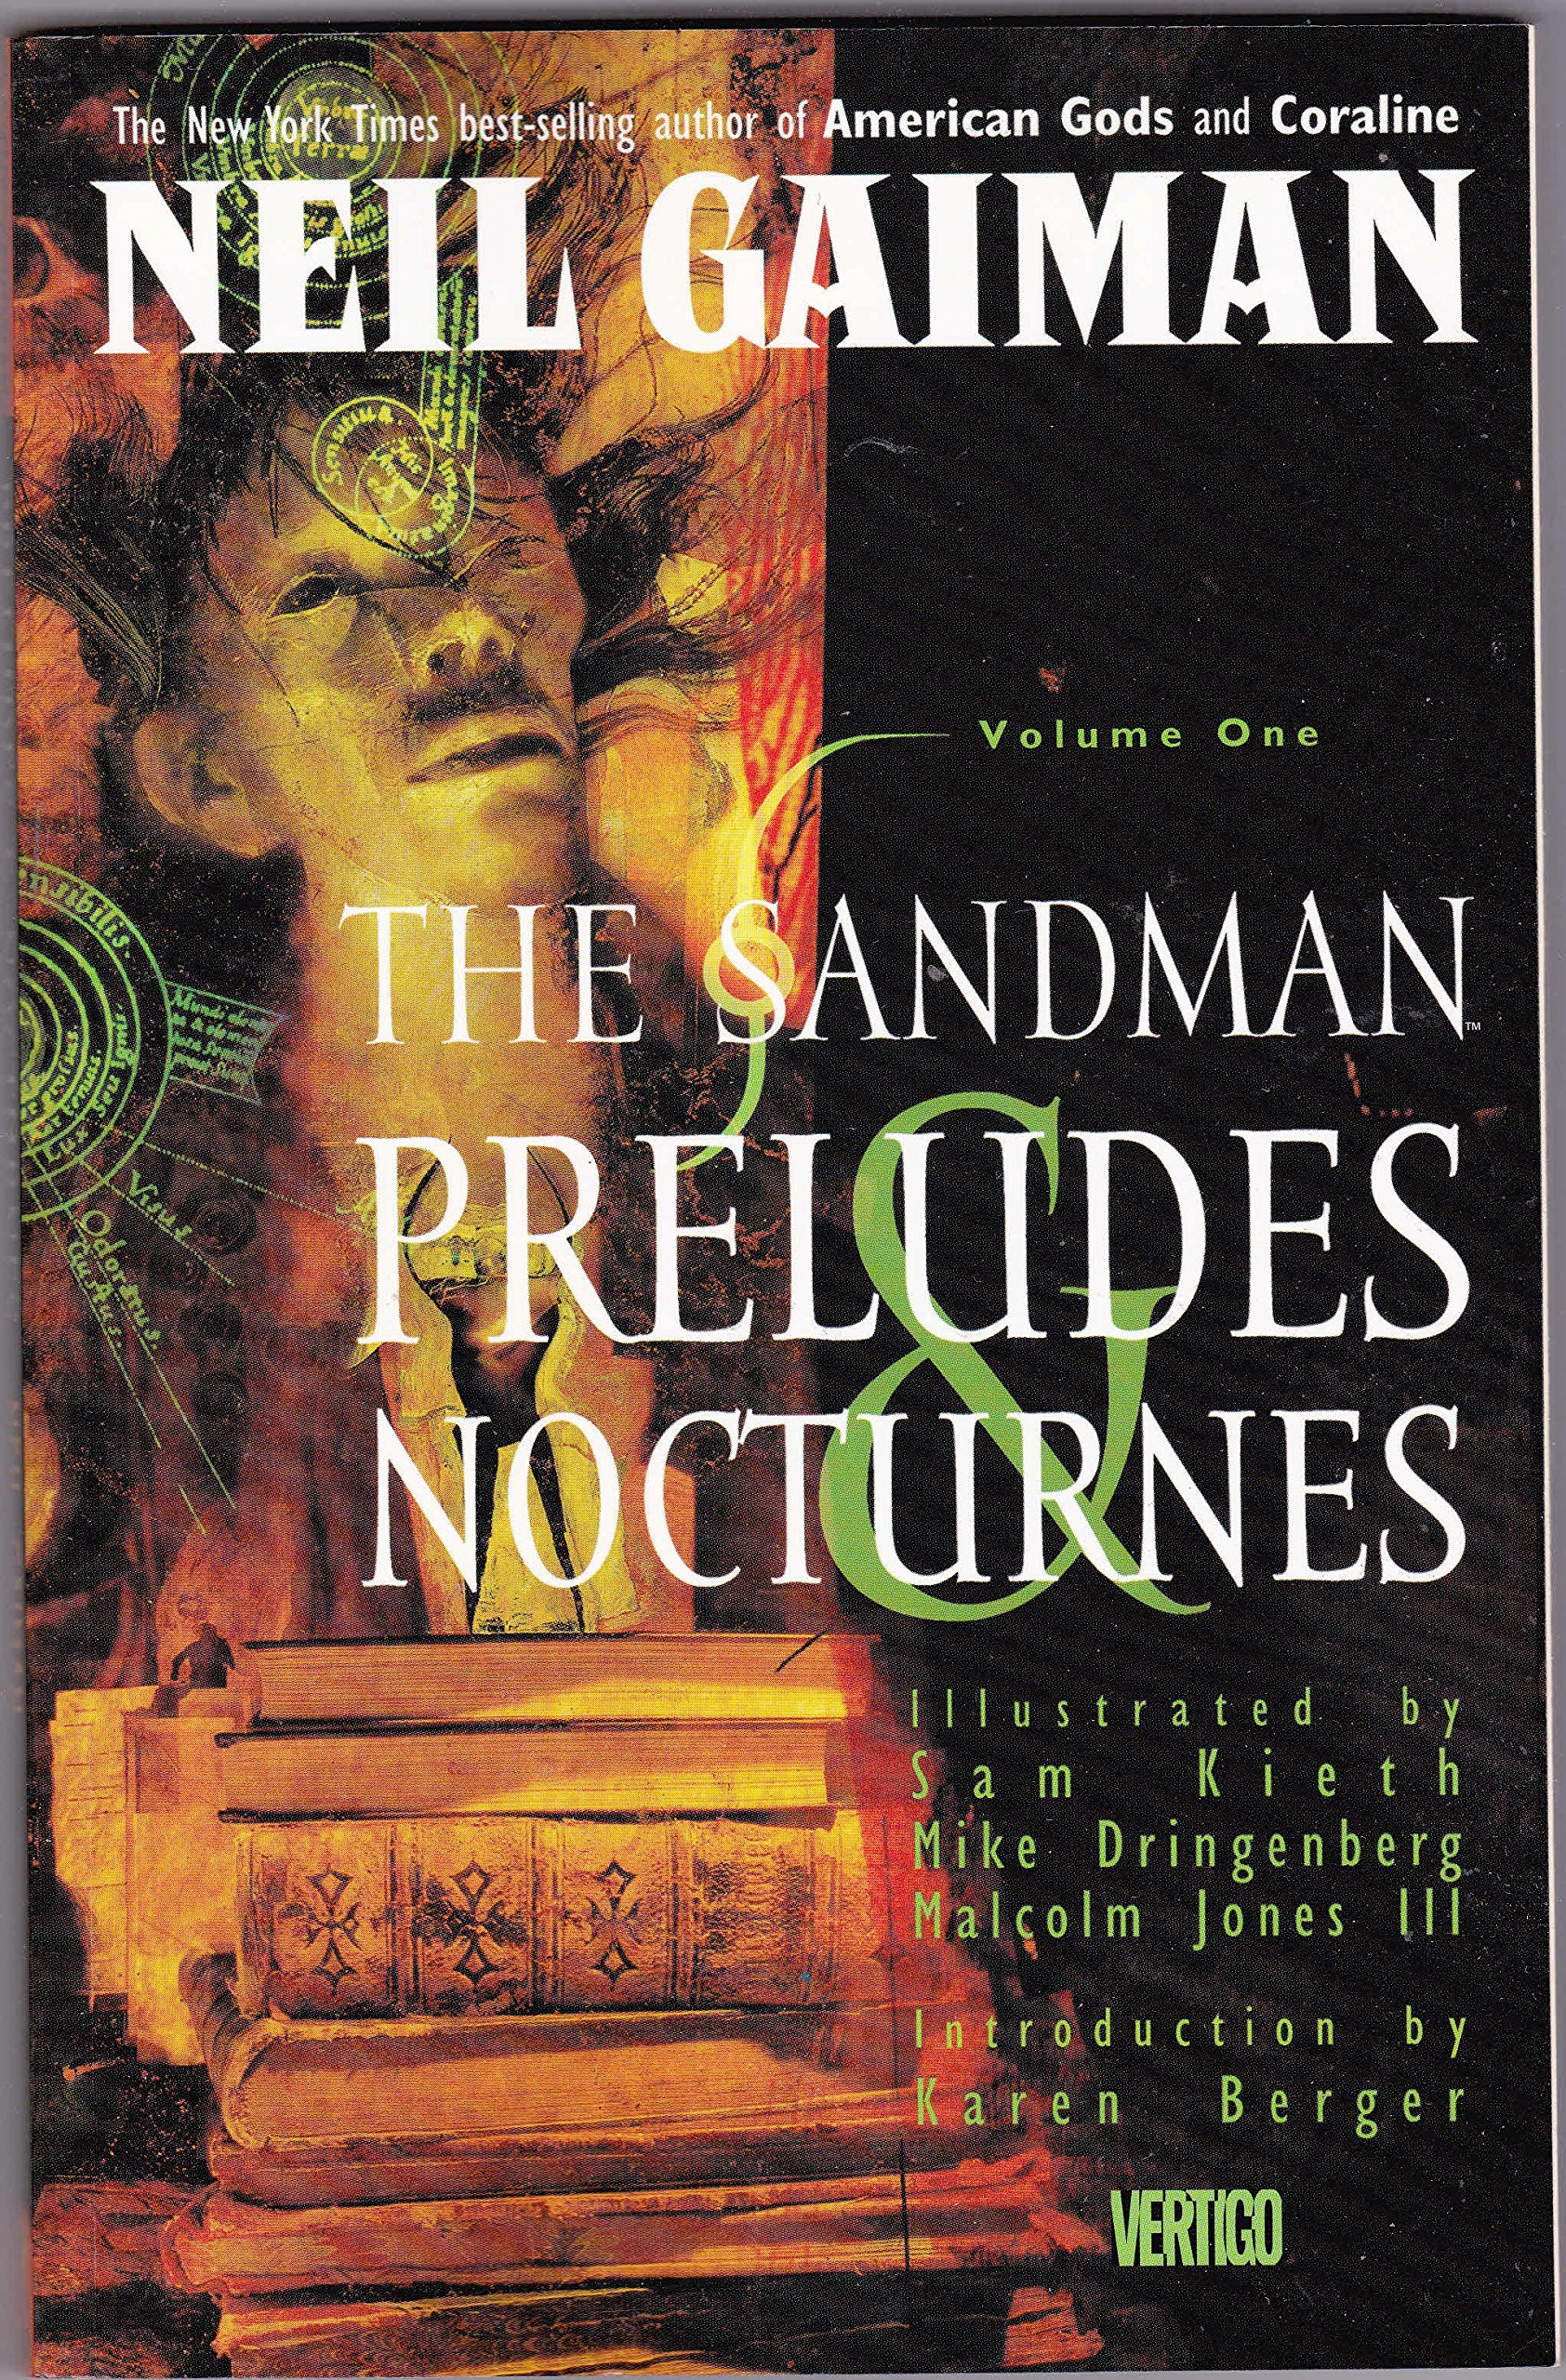 The Sandman Vol. 1: Preludes and Nocturnes, Neil Gaiman